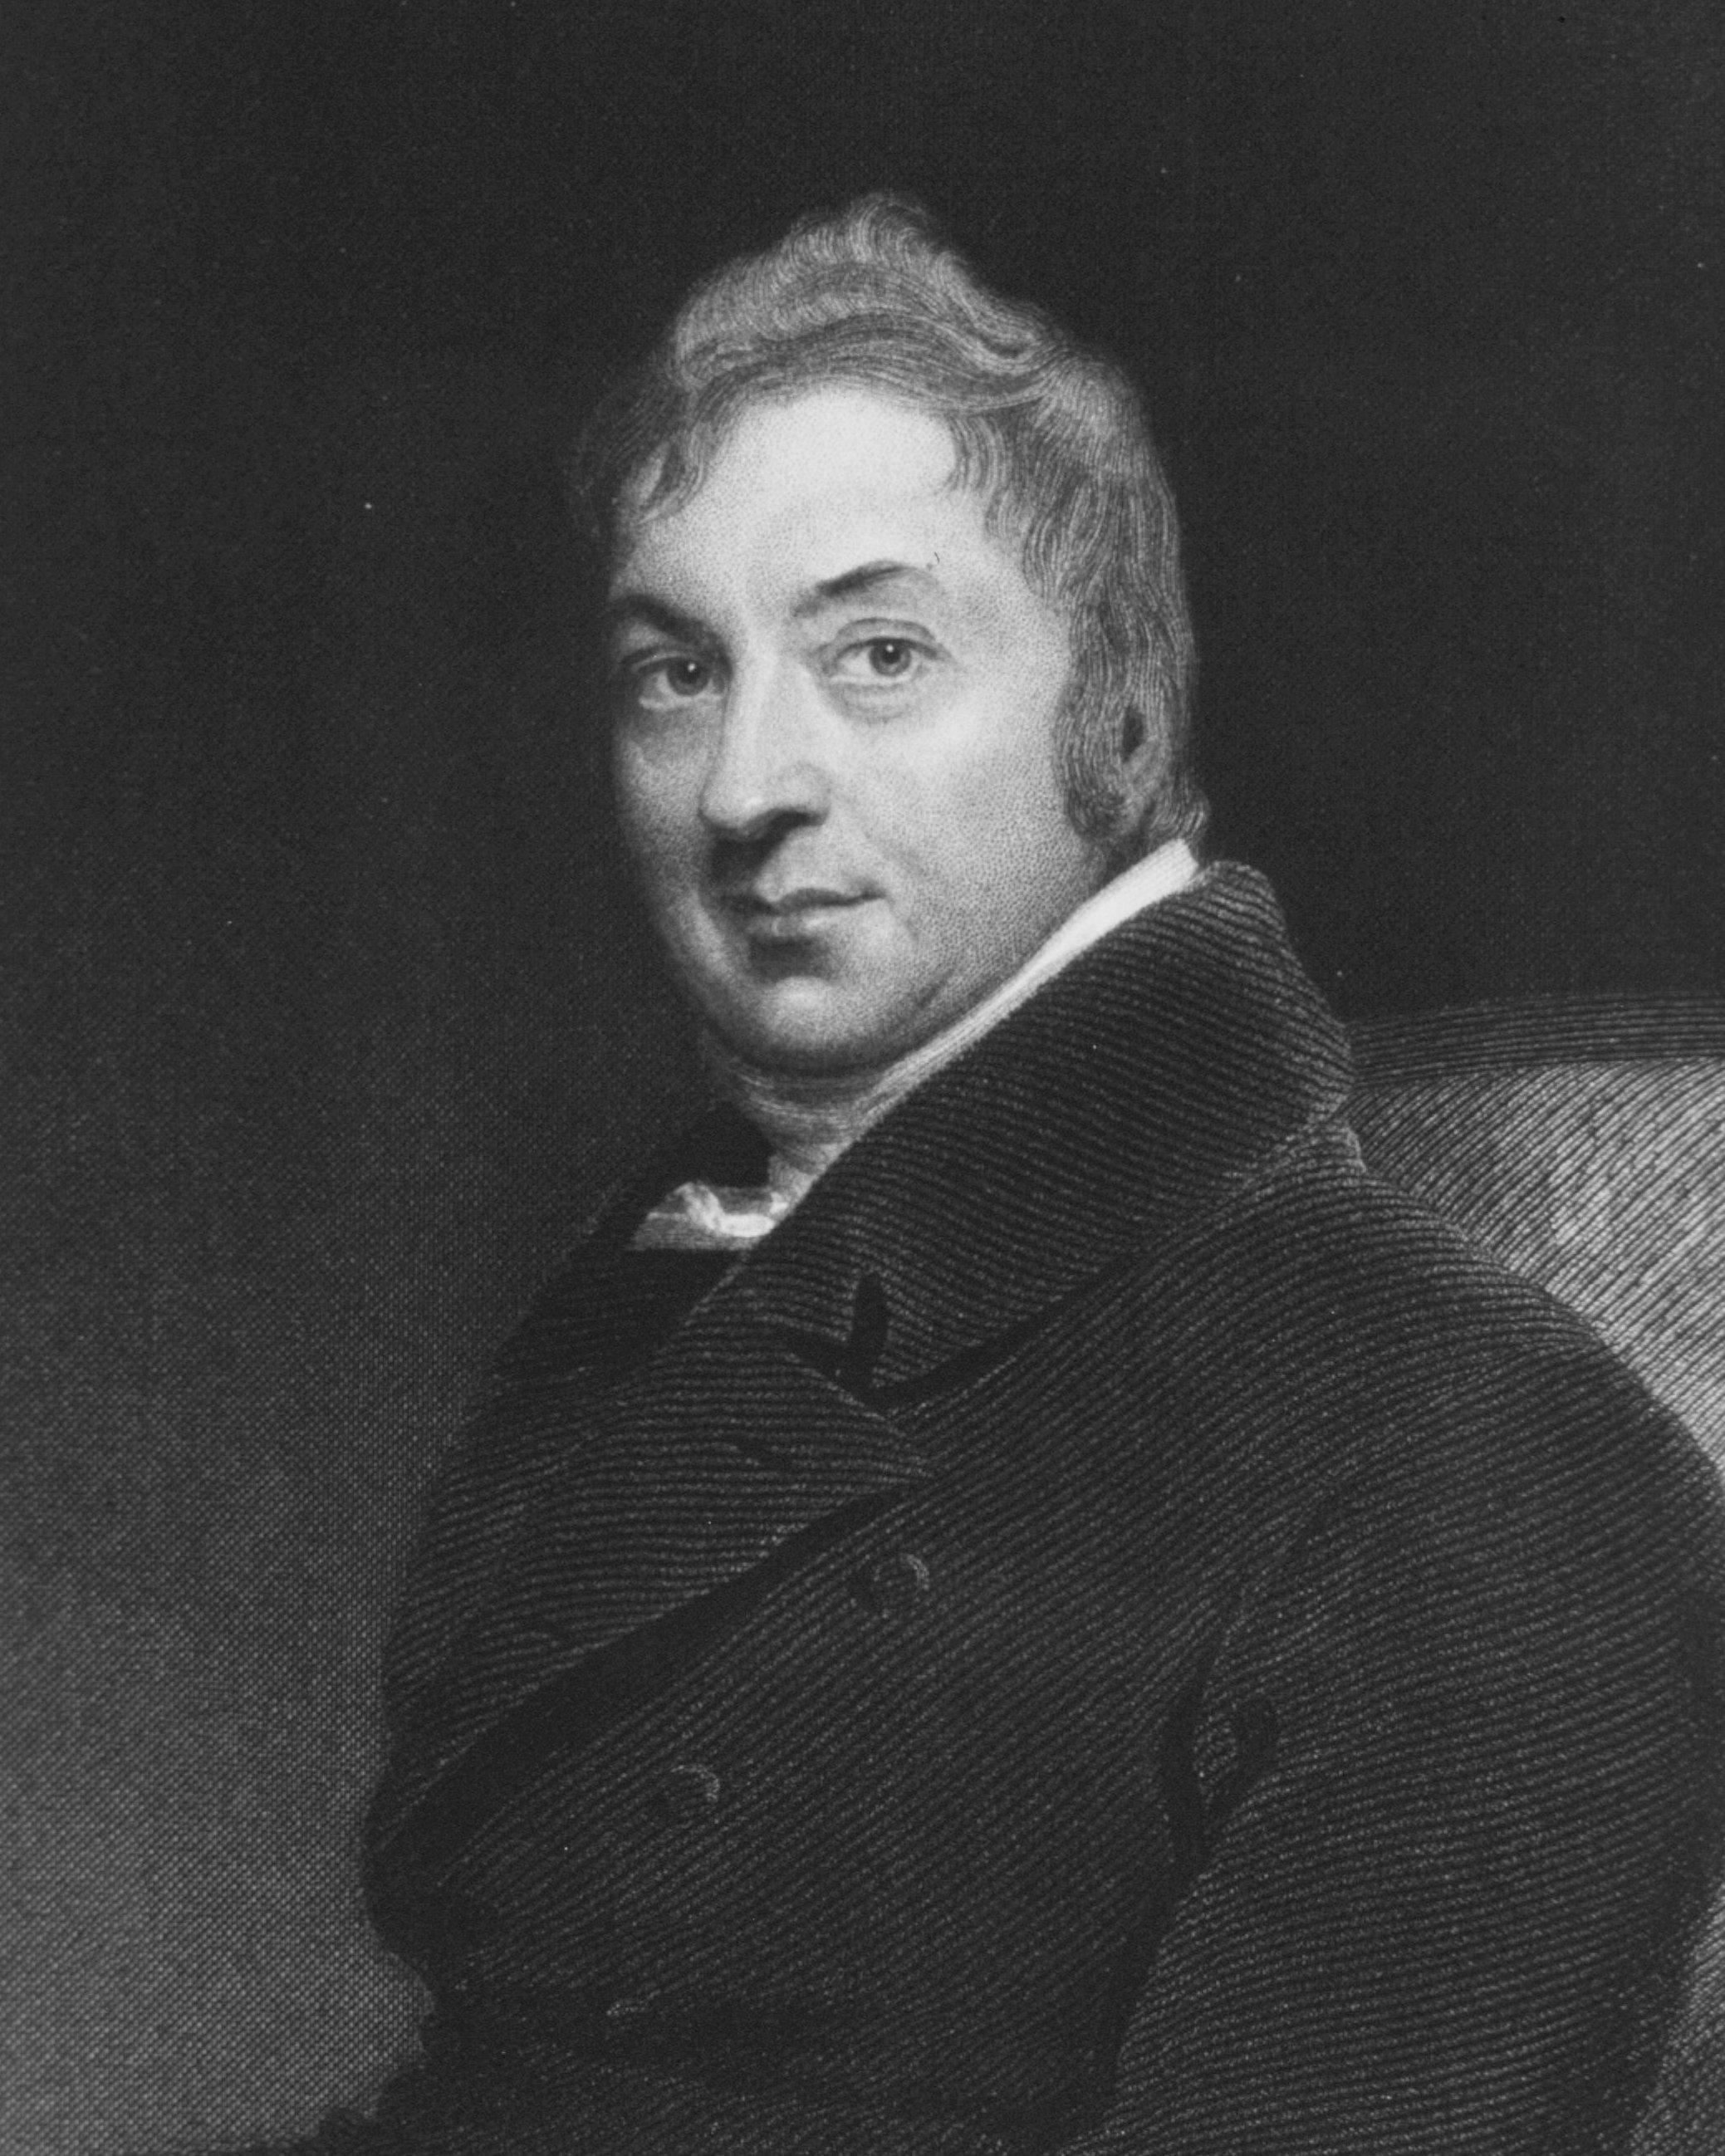 Edward Jenner (1749-1823) | Familypedia | FANDOM powered ...